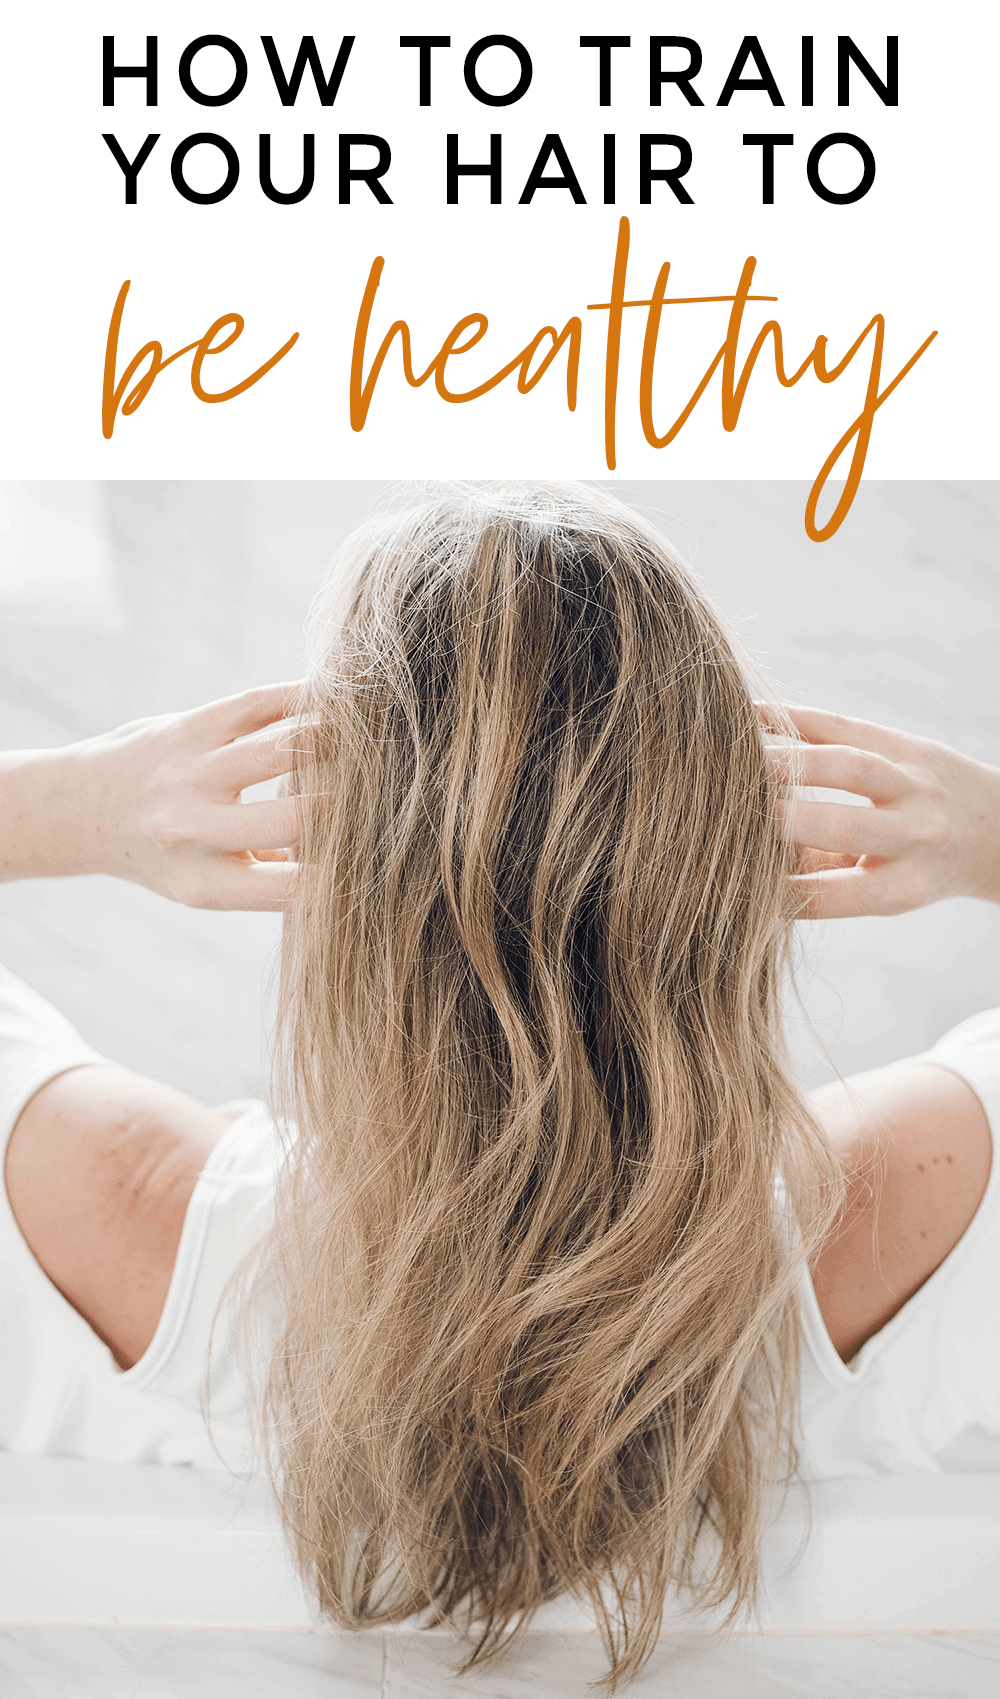 Houston blogger Meg O. on the Go shares some practical tips on how to train your hair to be healthy